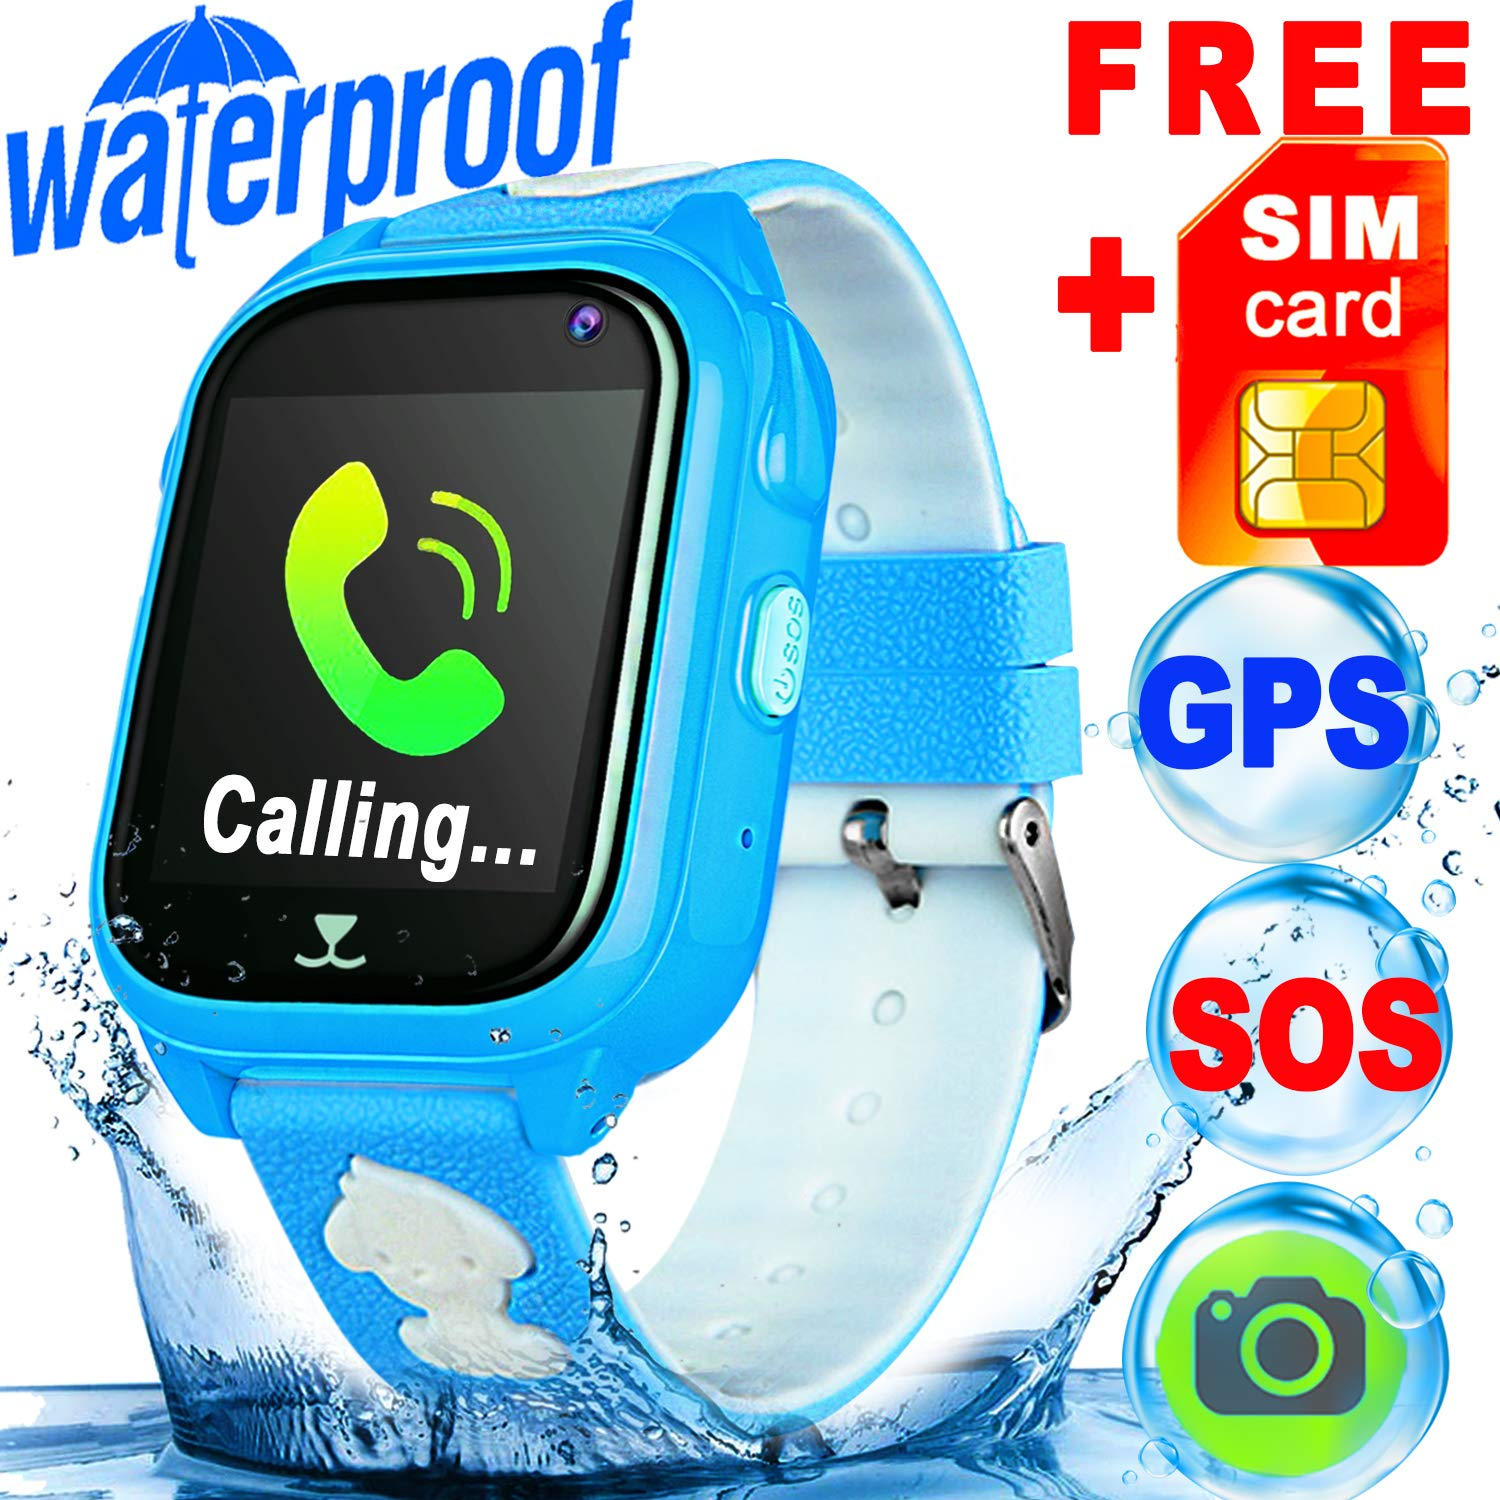 [SIM Card Included] IP68 Waterproof Kid Smart Watch Phone GPS Tracker Safety Smartwatch 3-12 Year Girls Boys SOS Camera Anti-Lost Game Smart Bracelet Wrist Watch Live Mobile App for iOS/Android